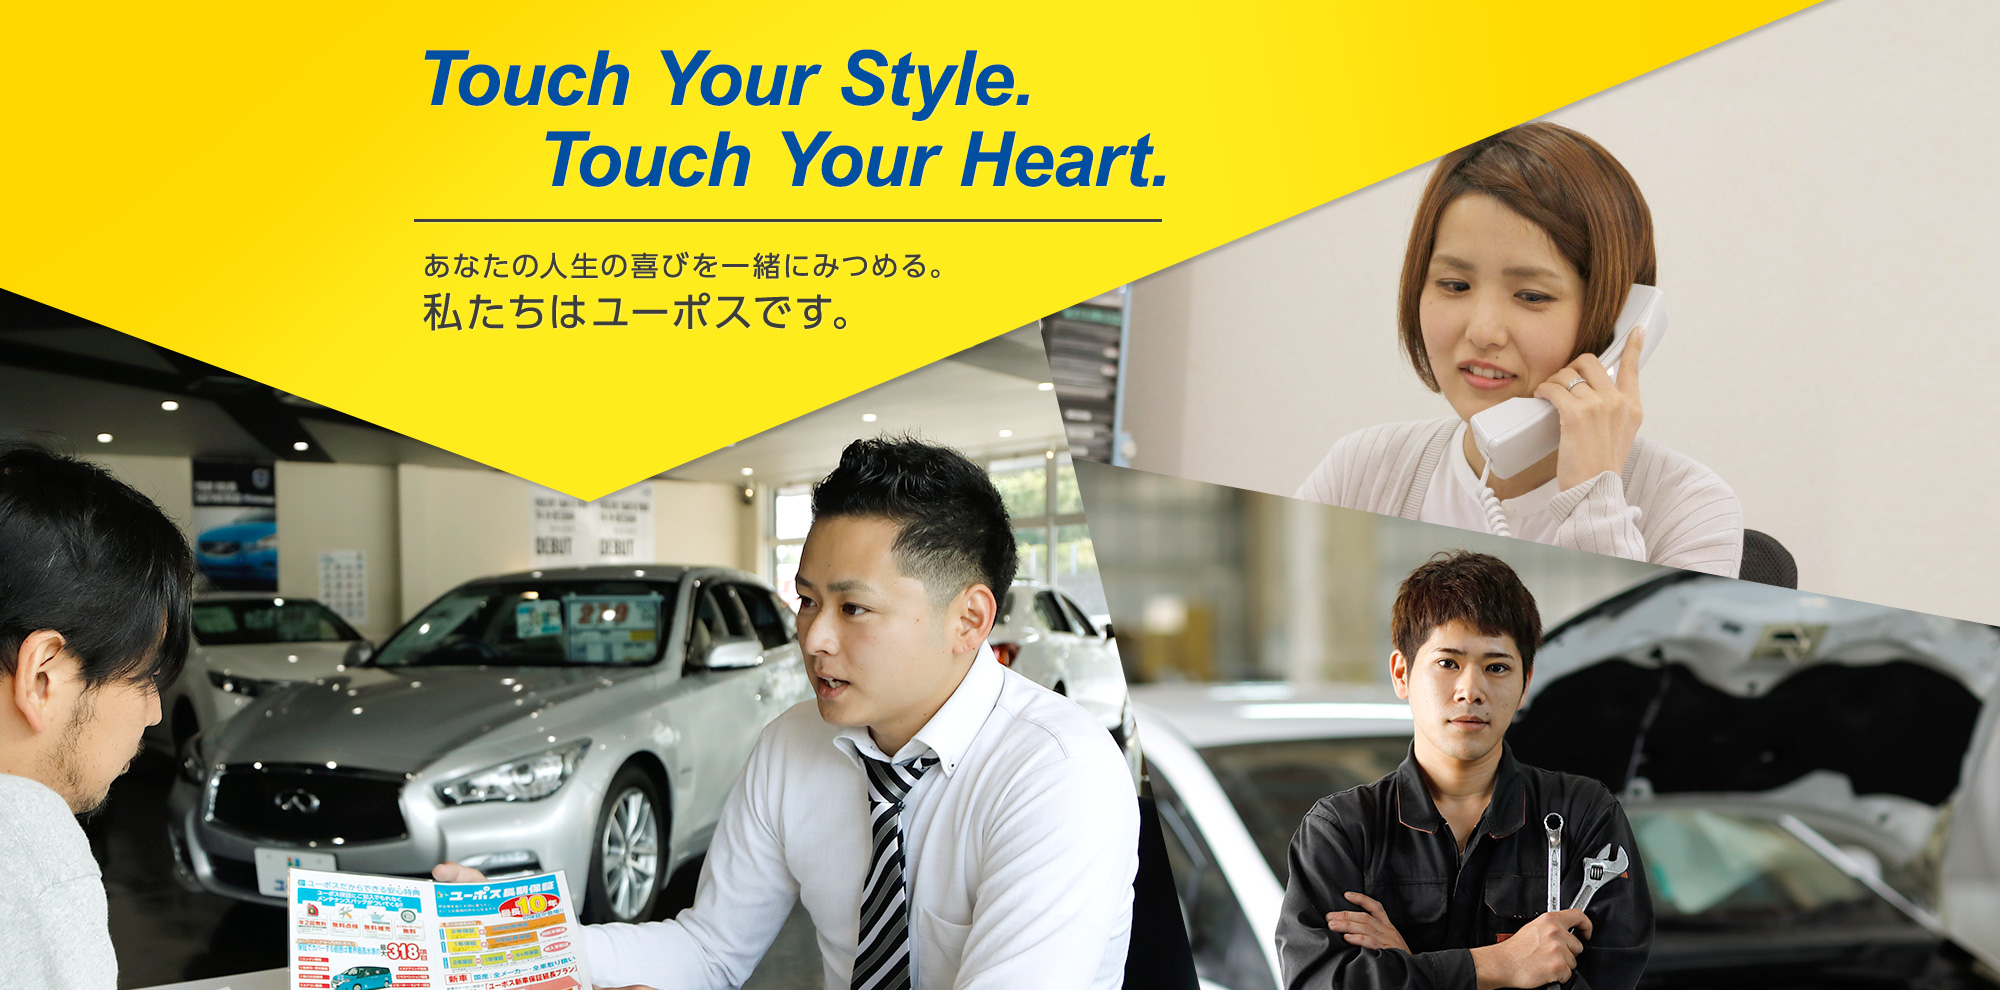 Touch Your Style. Touch Your Heart. あなたの人生の喜びを一緒にみつめる。私たちはユーポスです。